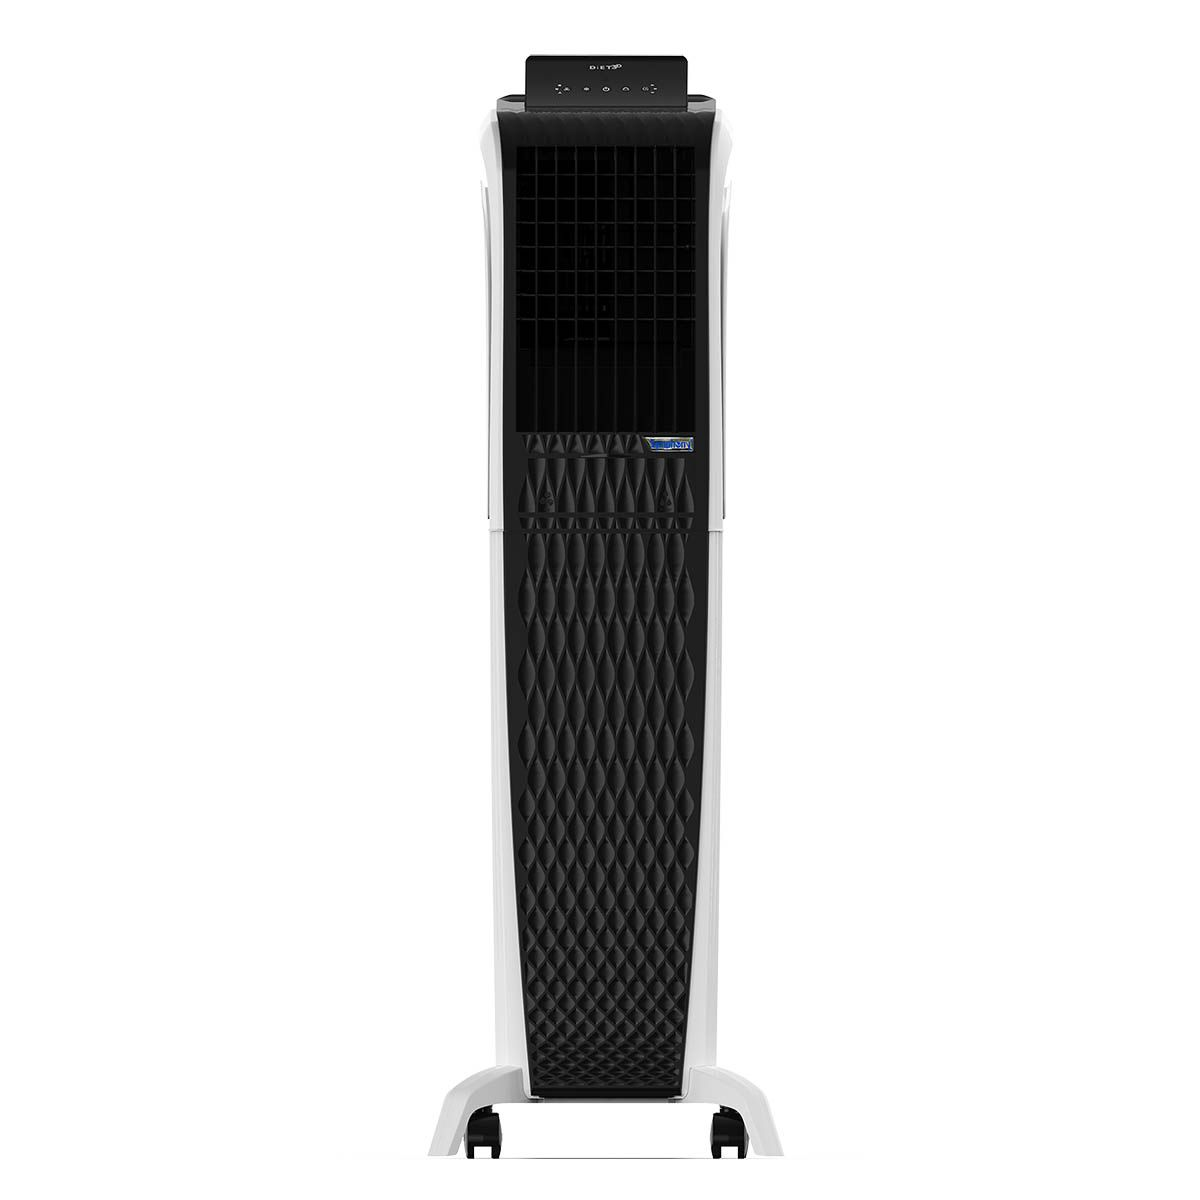 Symphony Diet 3D 55i+ Tower Air Cooler 55-litres with Magnetic Remote